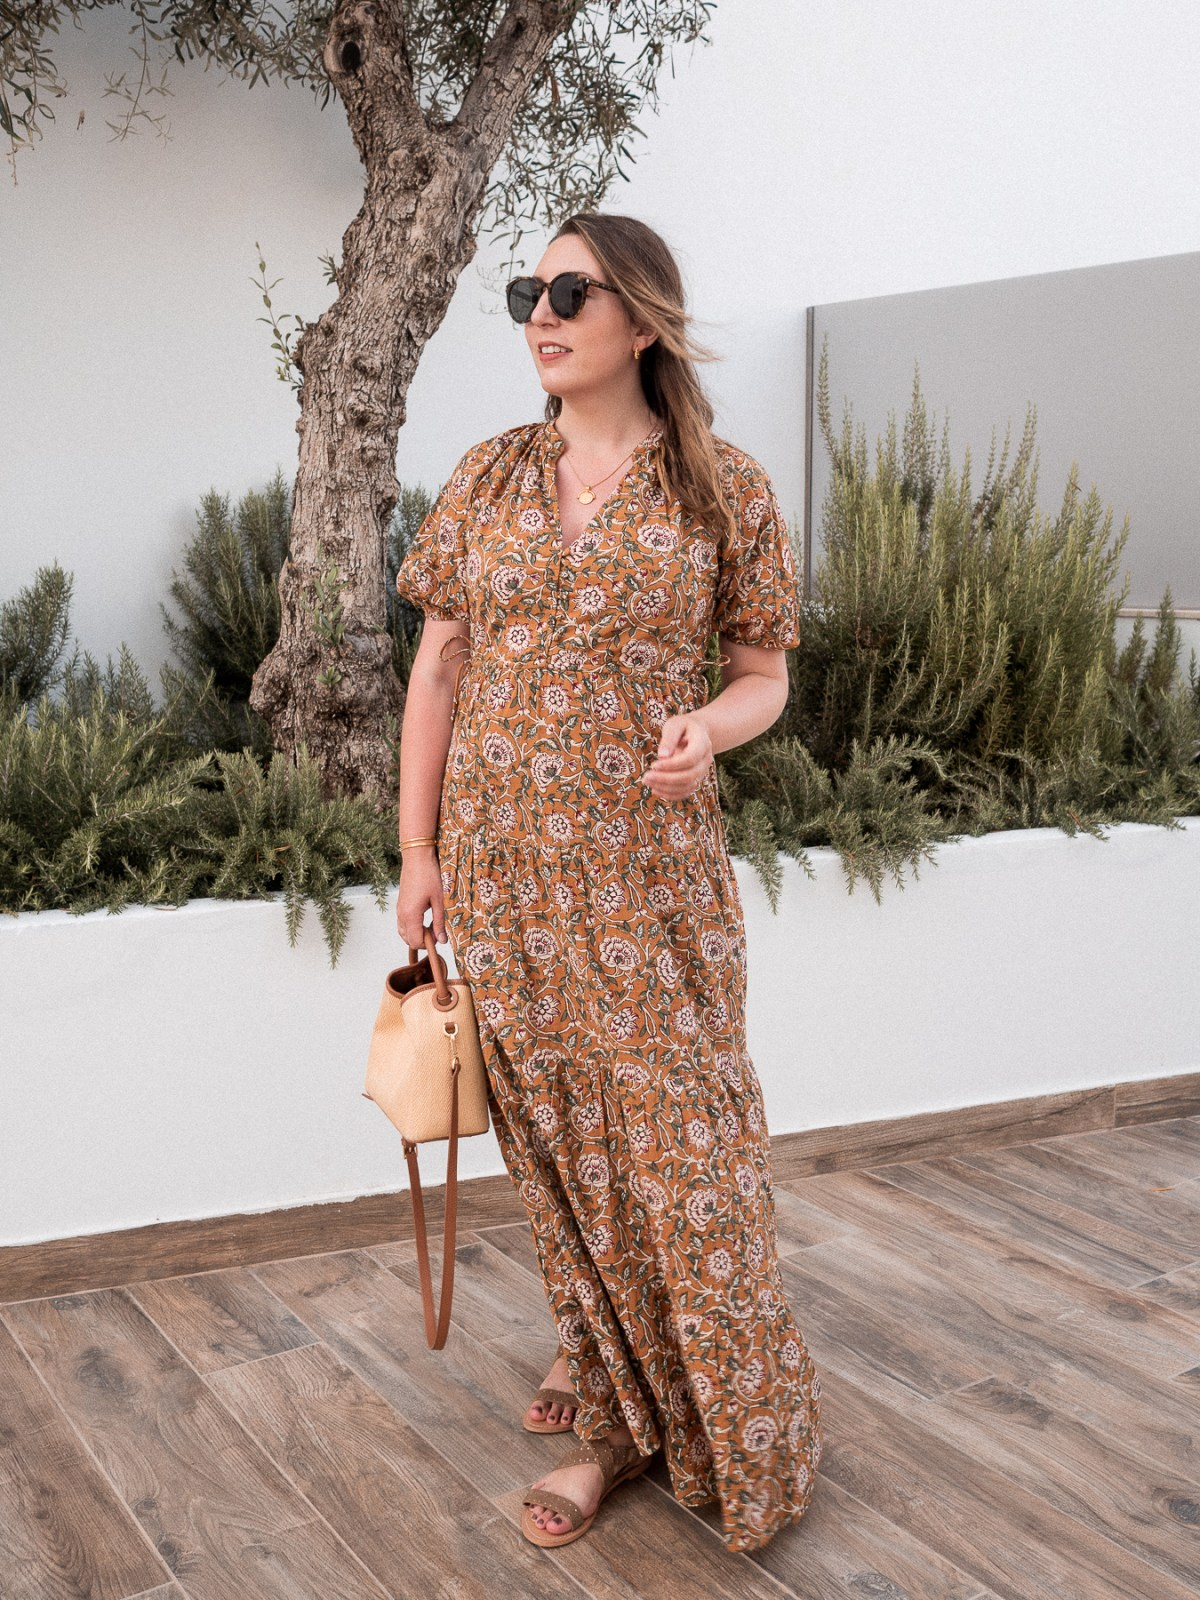 Packing for a babymoon in Greece, featuring Sezane dress, Elleme Baozi tote, and Missoma gold jewelry | W&S